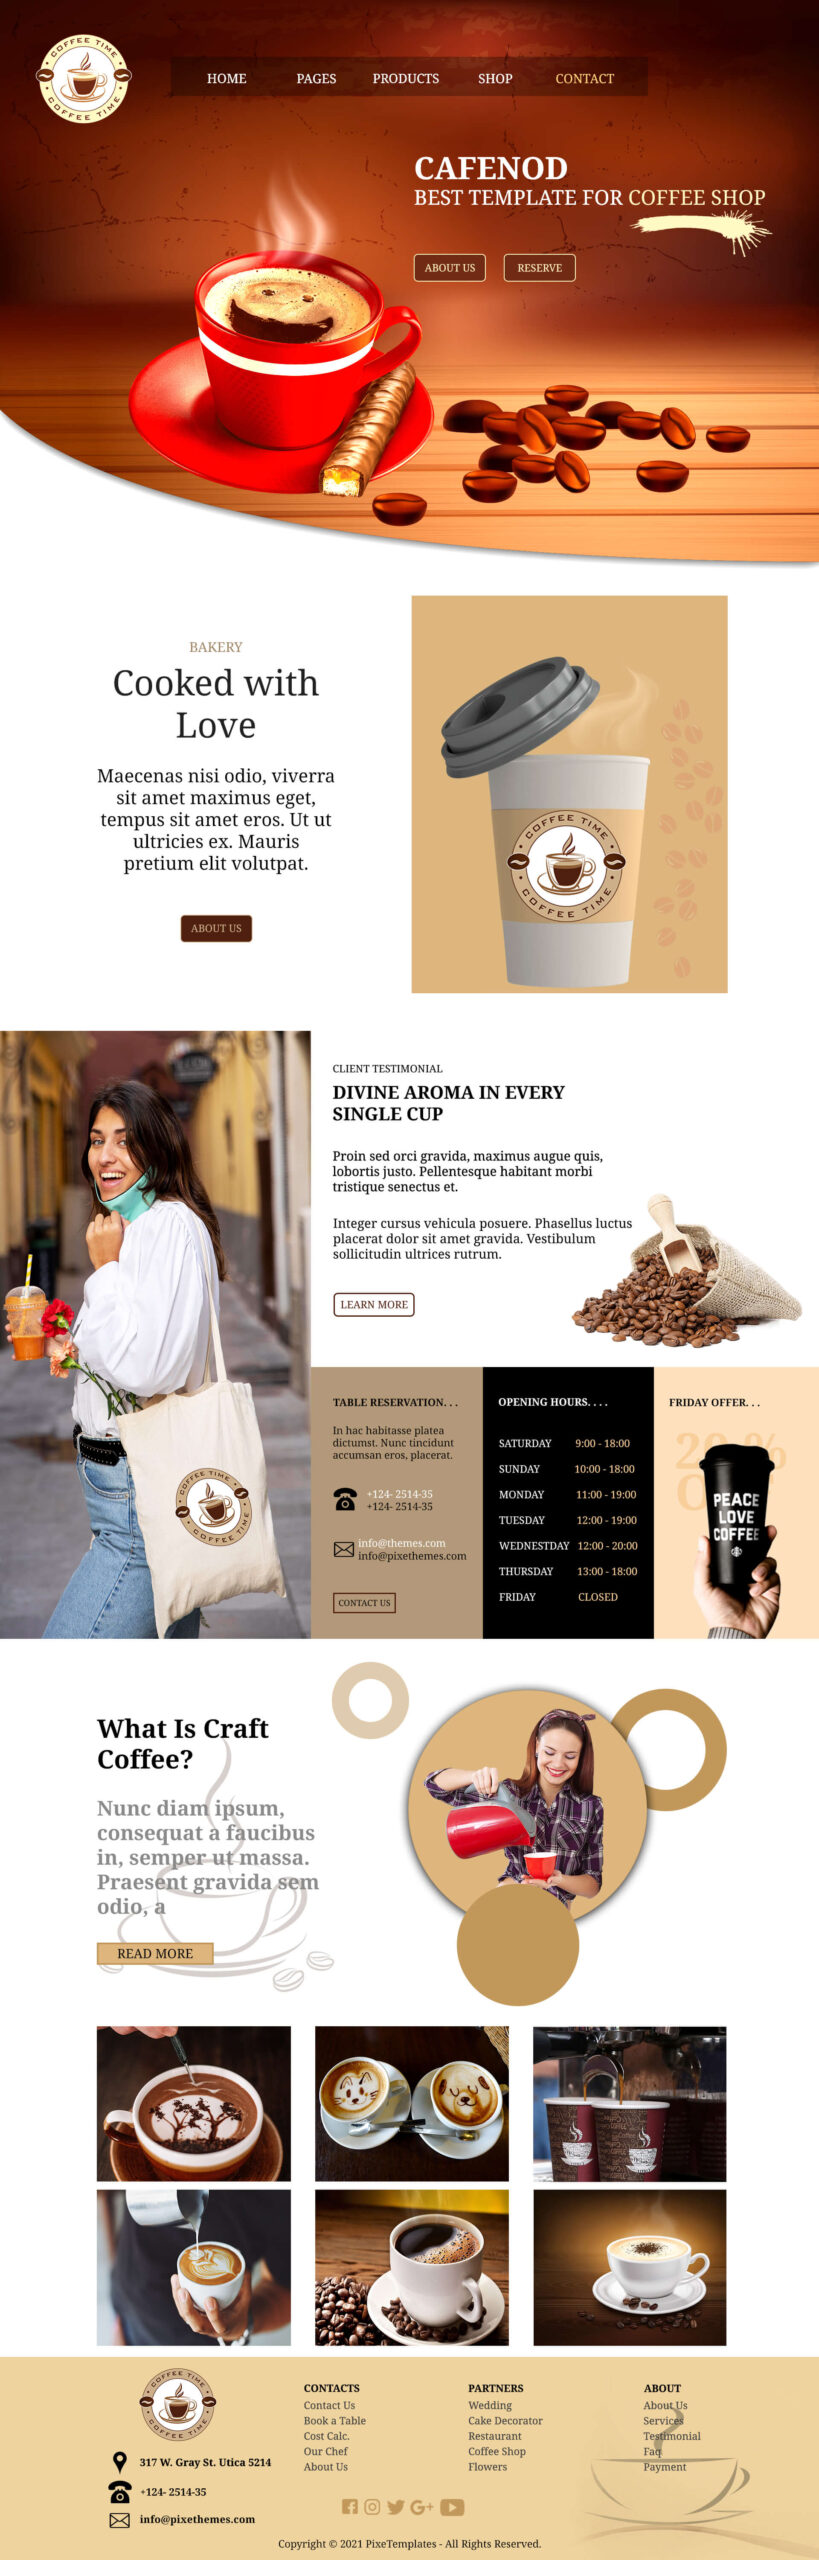 Website Template for Coffee Shop, With Nice Color Scheme